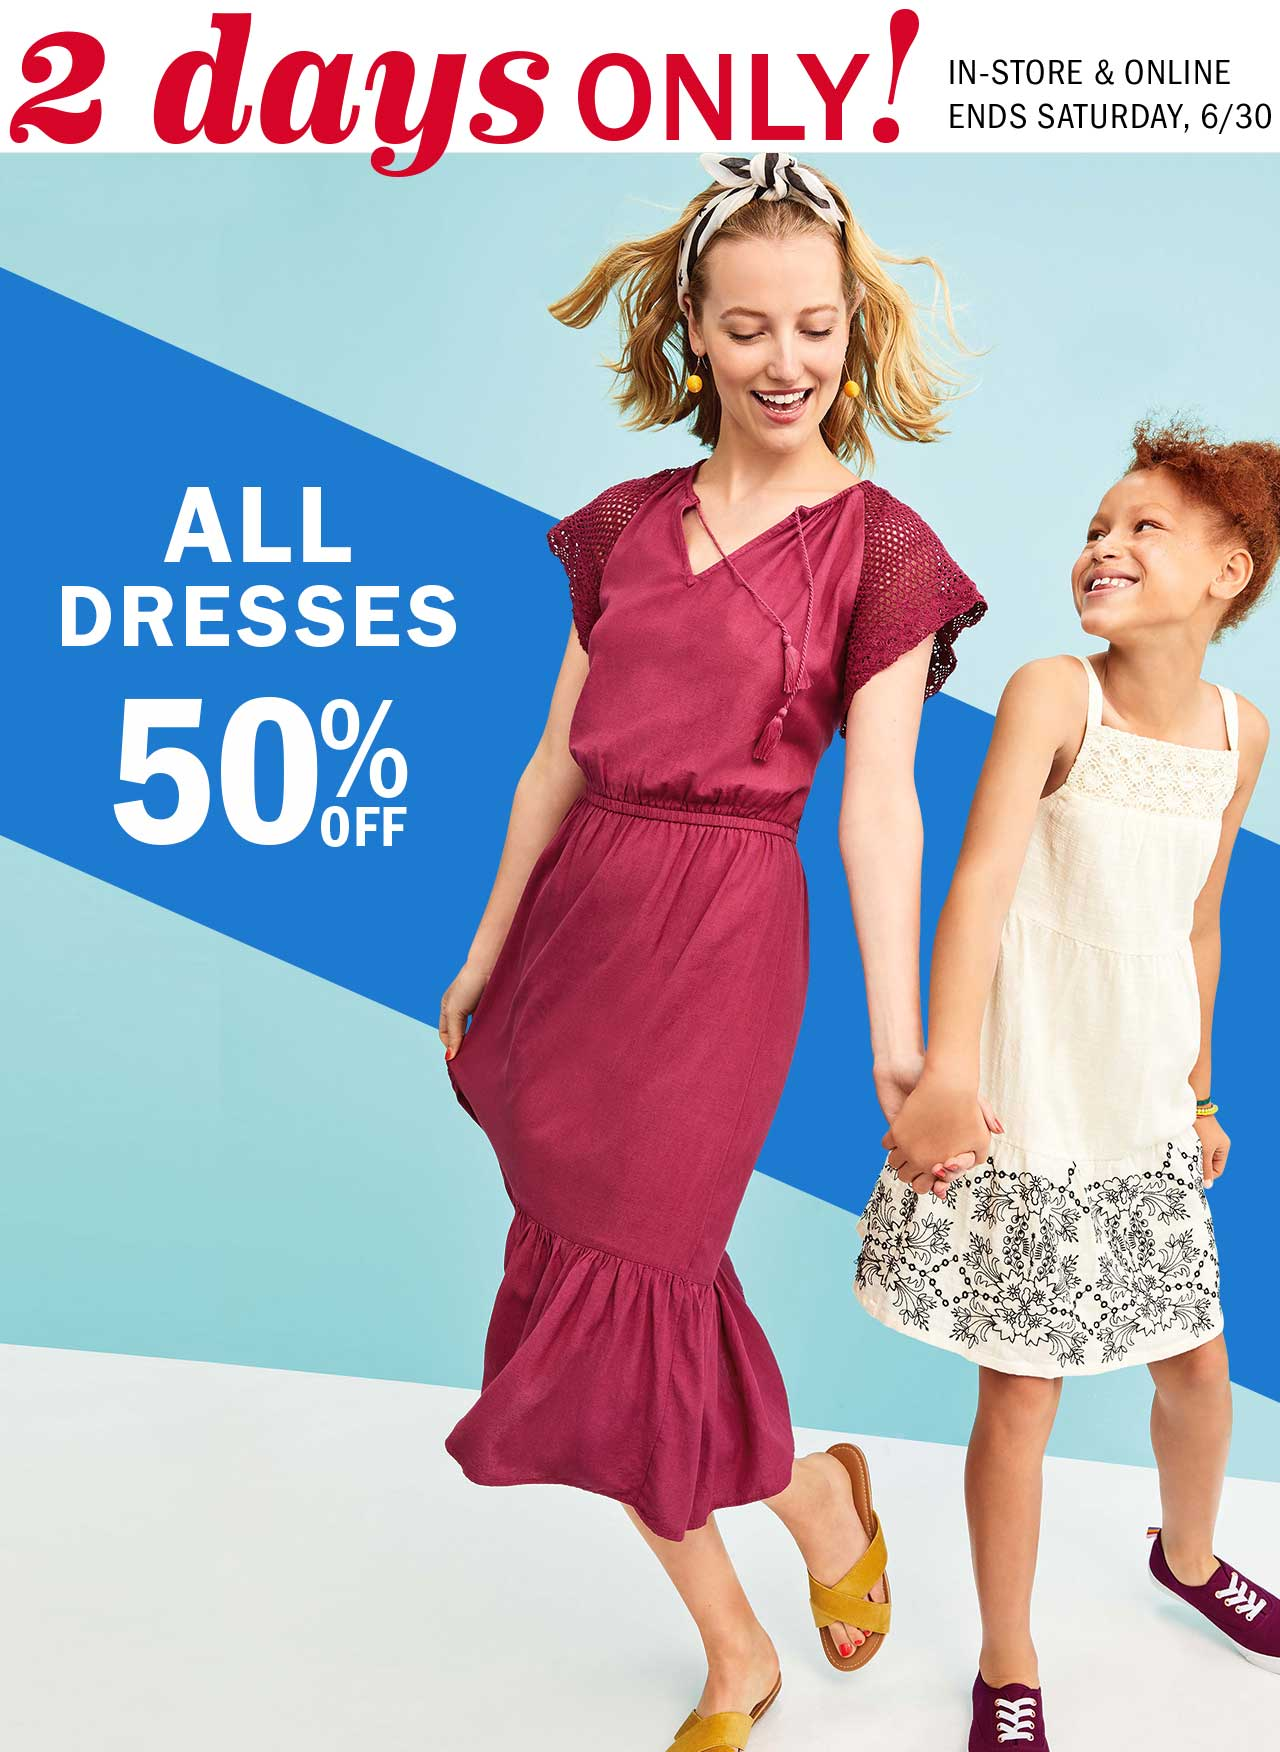 2 days ONLY! ALL DRESSES 50% OFF